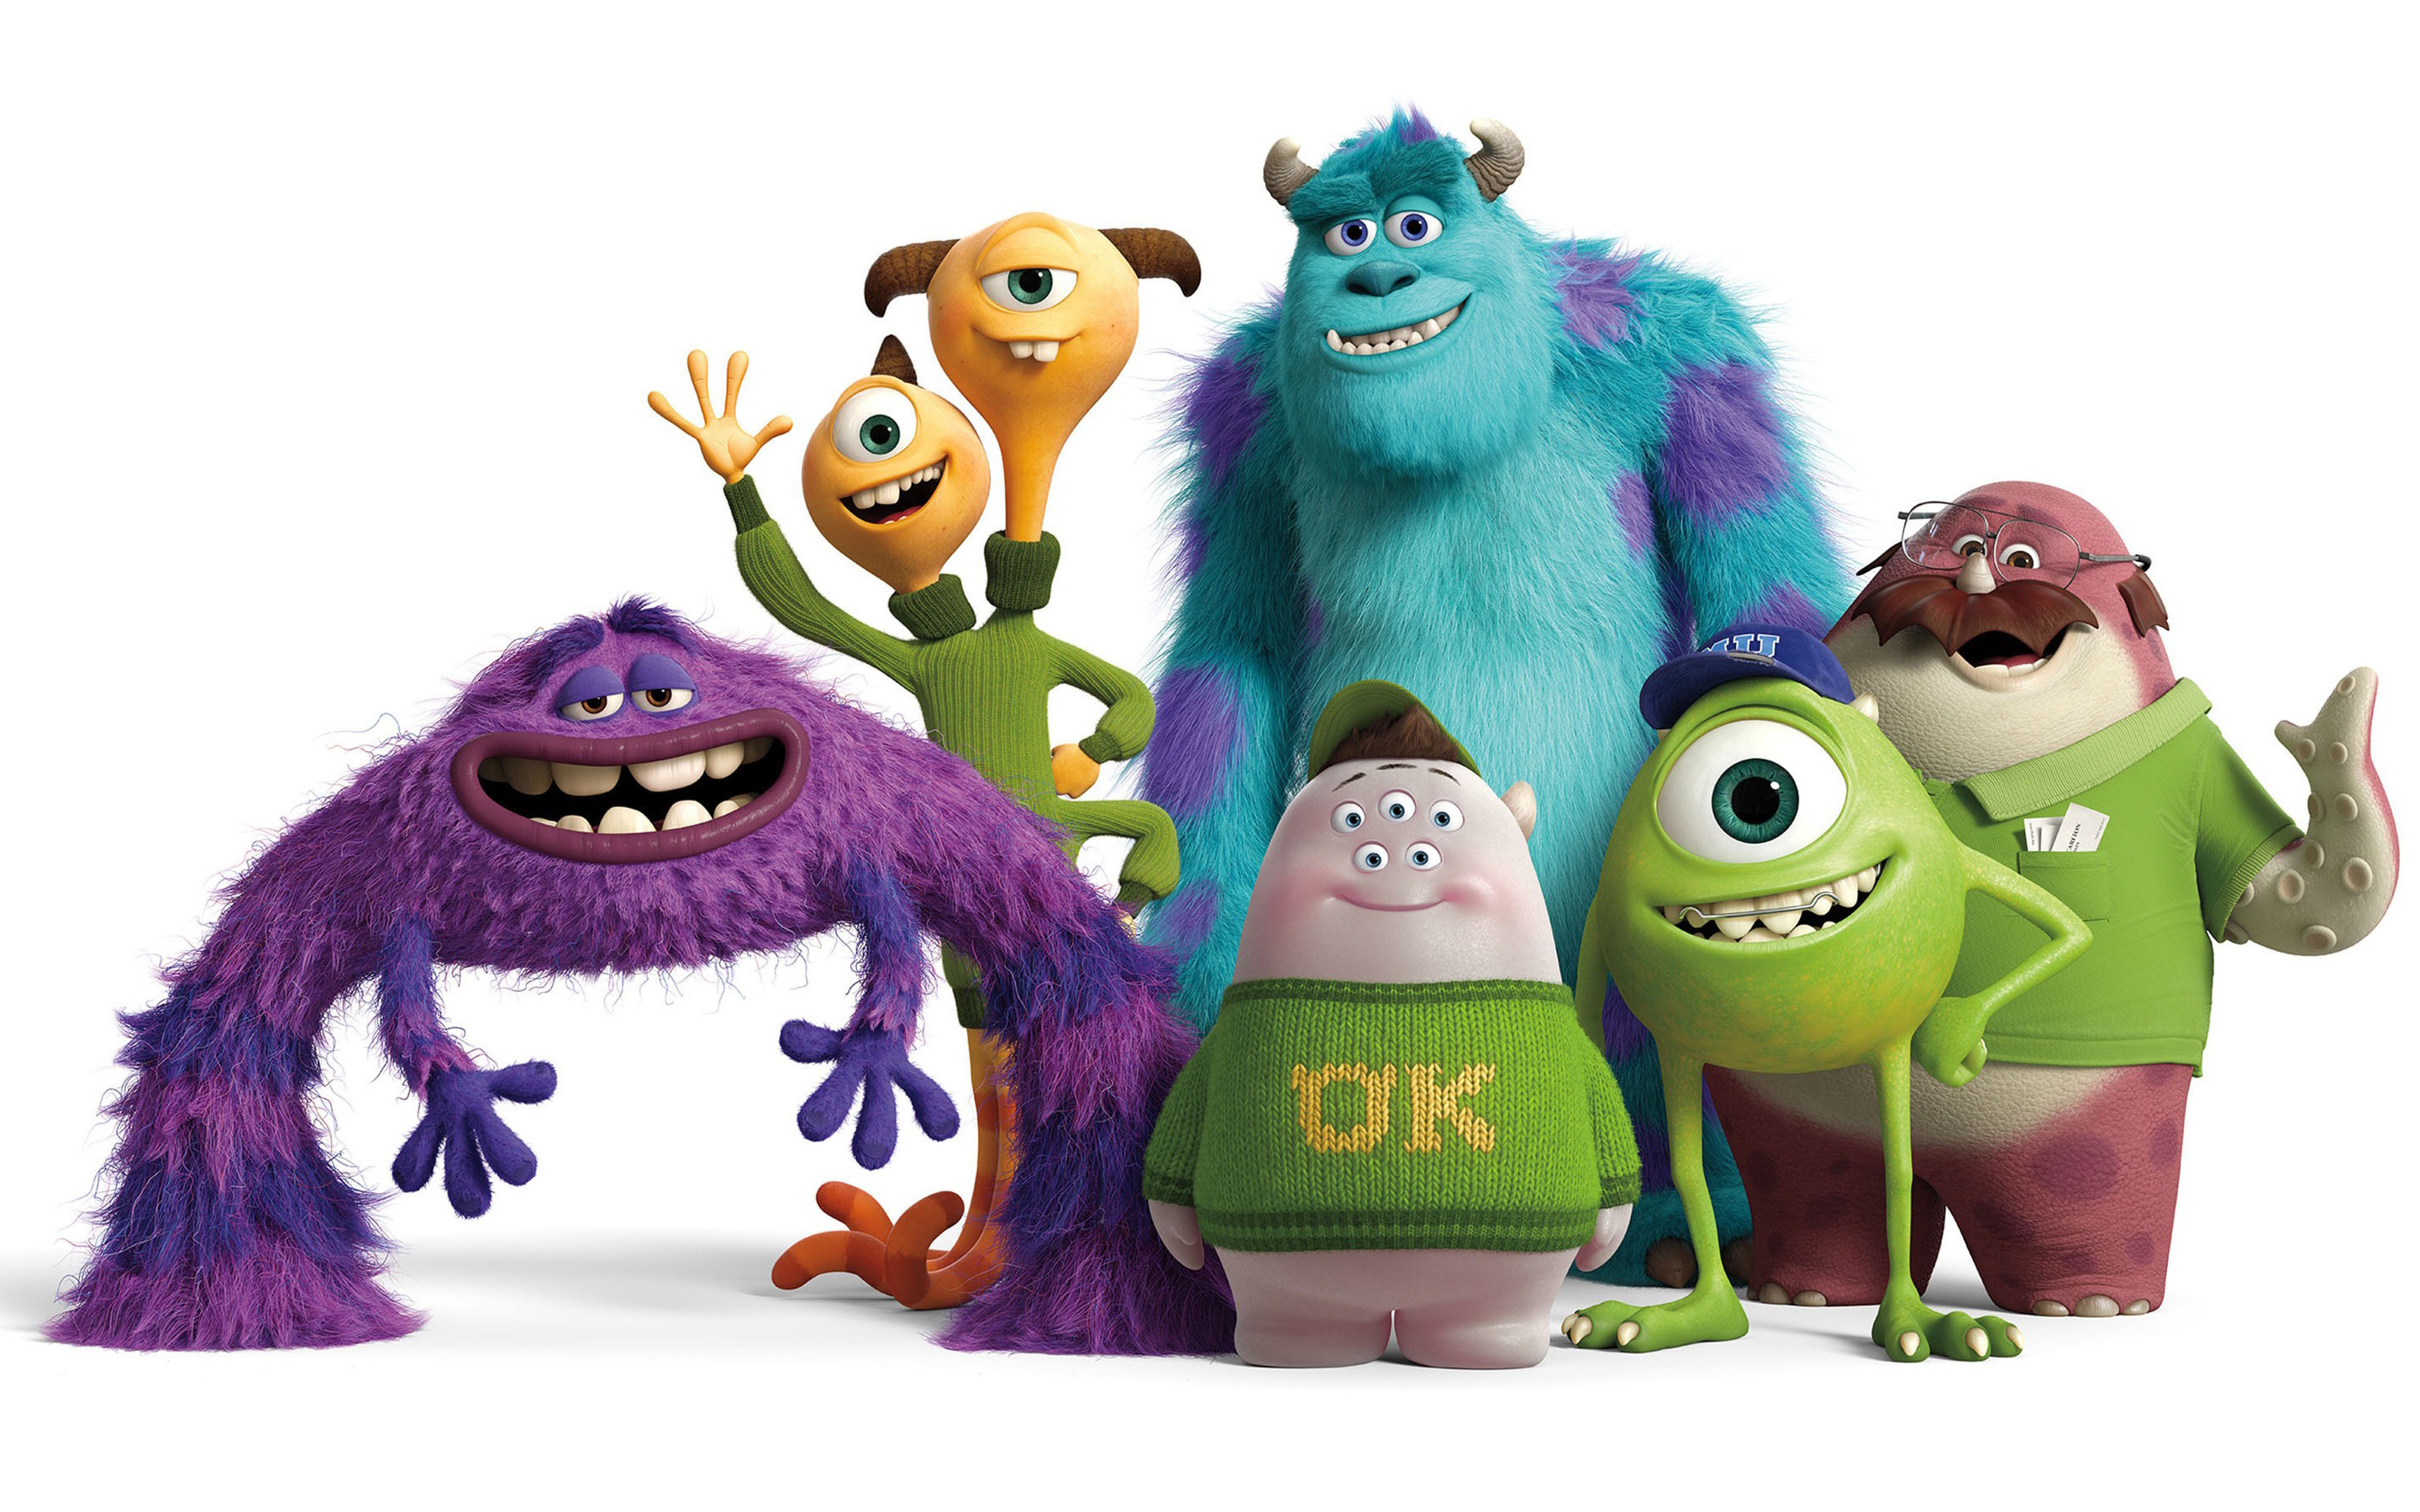 2880x1800 Pixars Monsters University